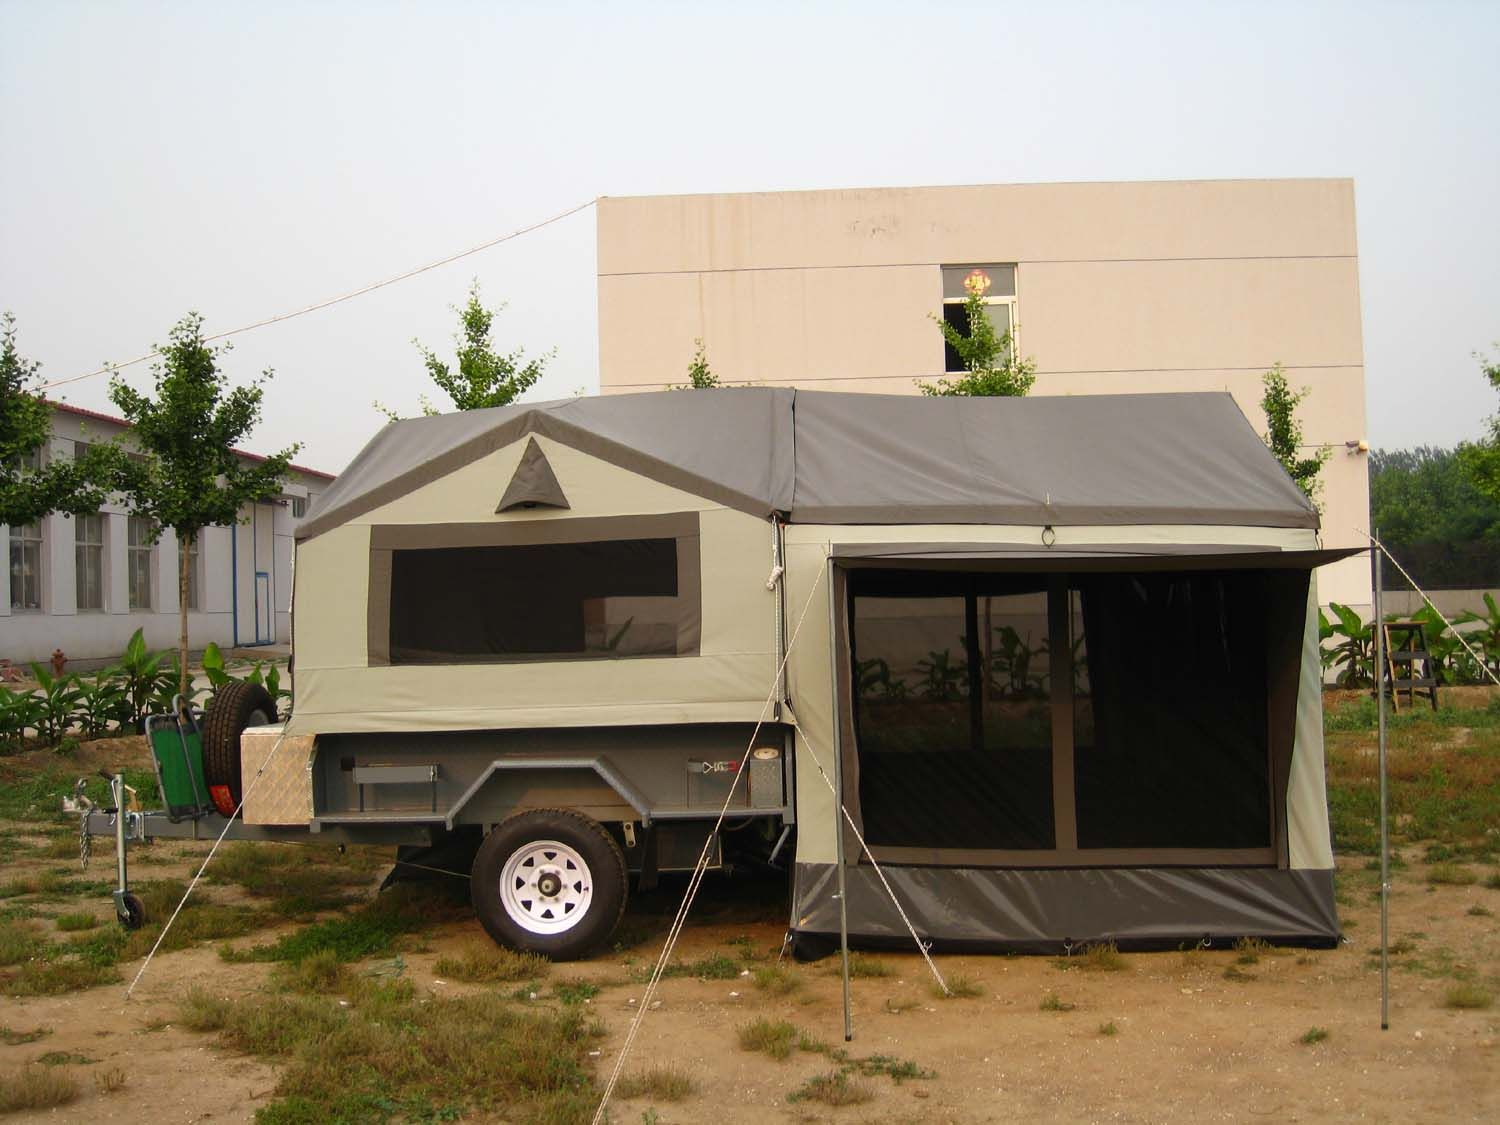 Camping Trailers Camping Tips And Tricks For Beginners Camper Trailer Tent Camping Trailer Trailer Tent